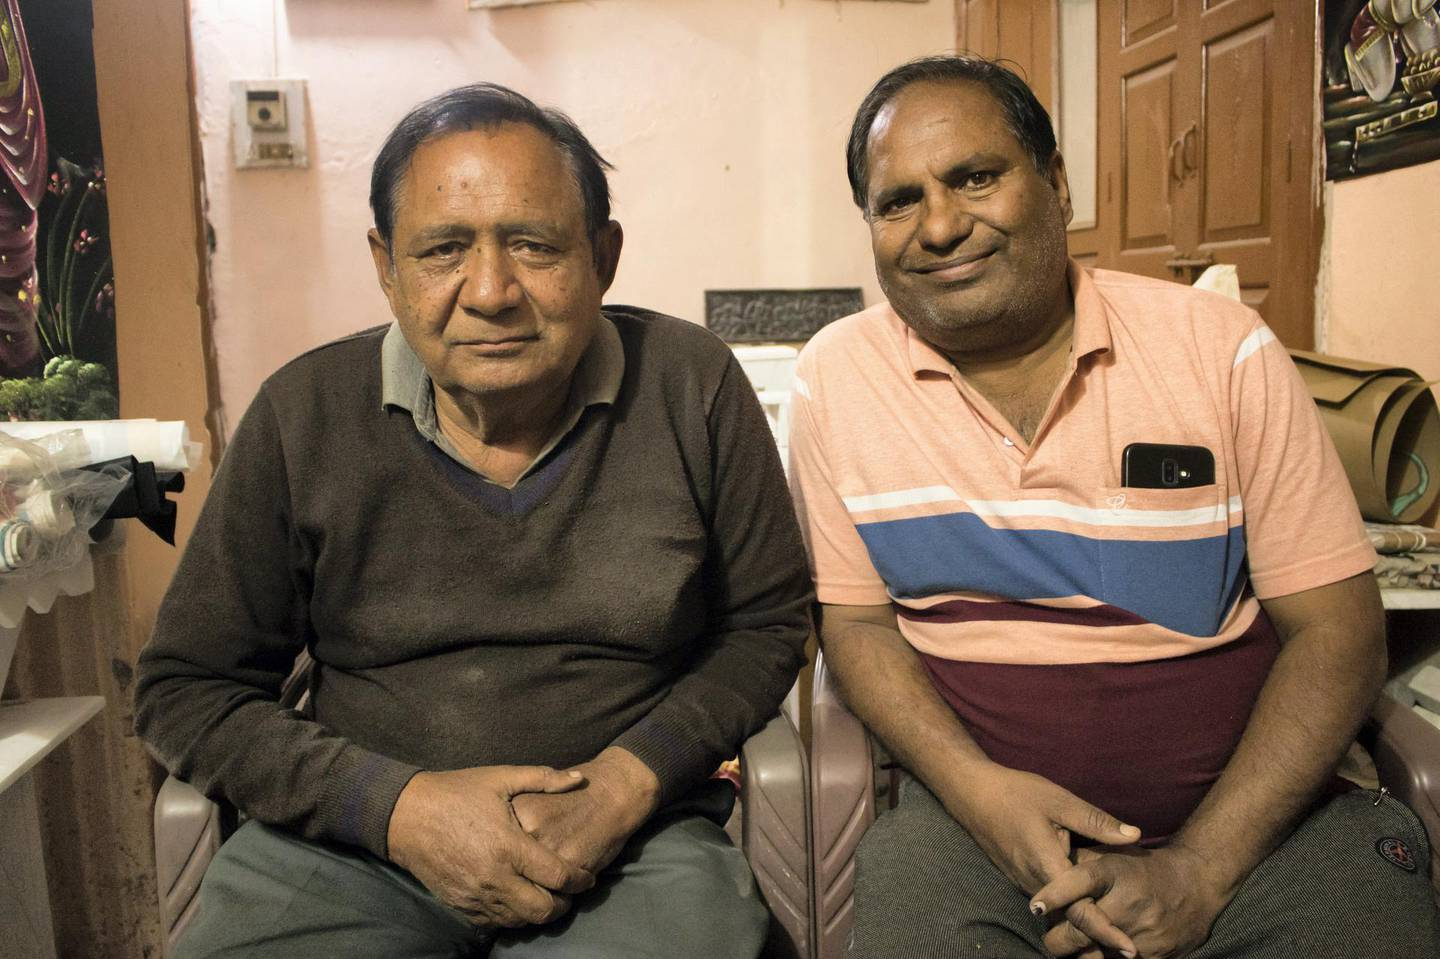 Anil Vyas (to the left) and Rajesh Vyas are both painters and are the last generation artists in their family to keep the Bani Thani art alive. Courtesy: Sanket Jain